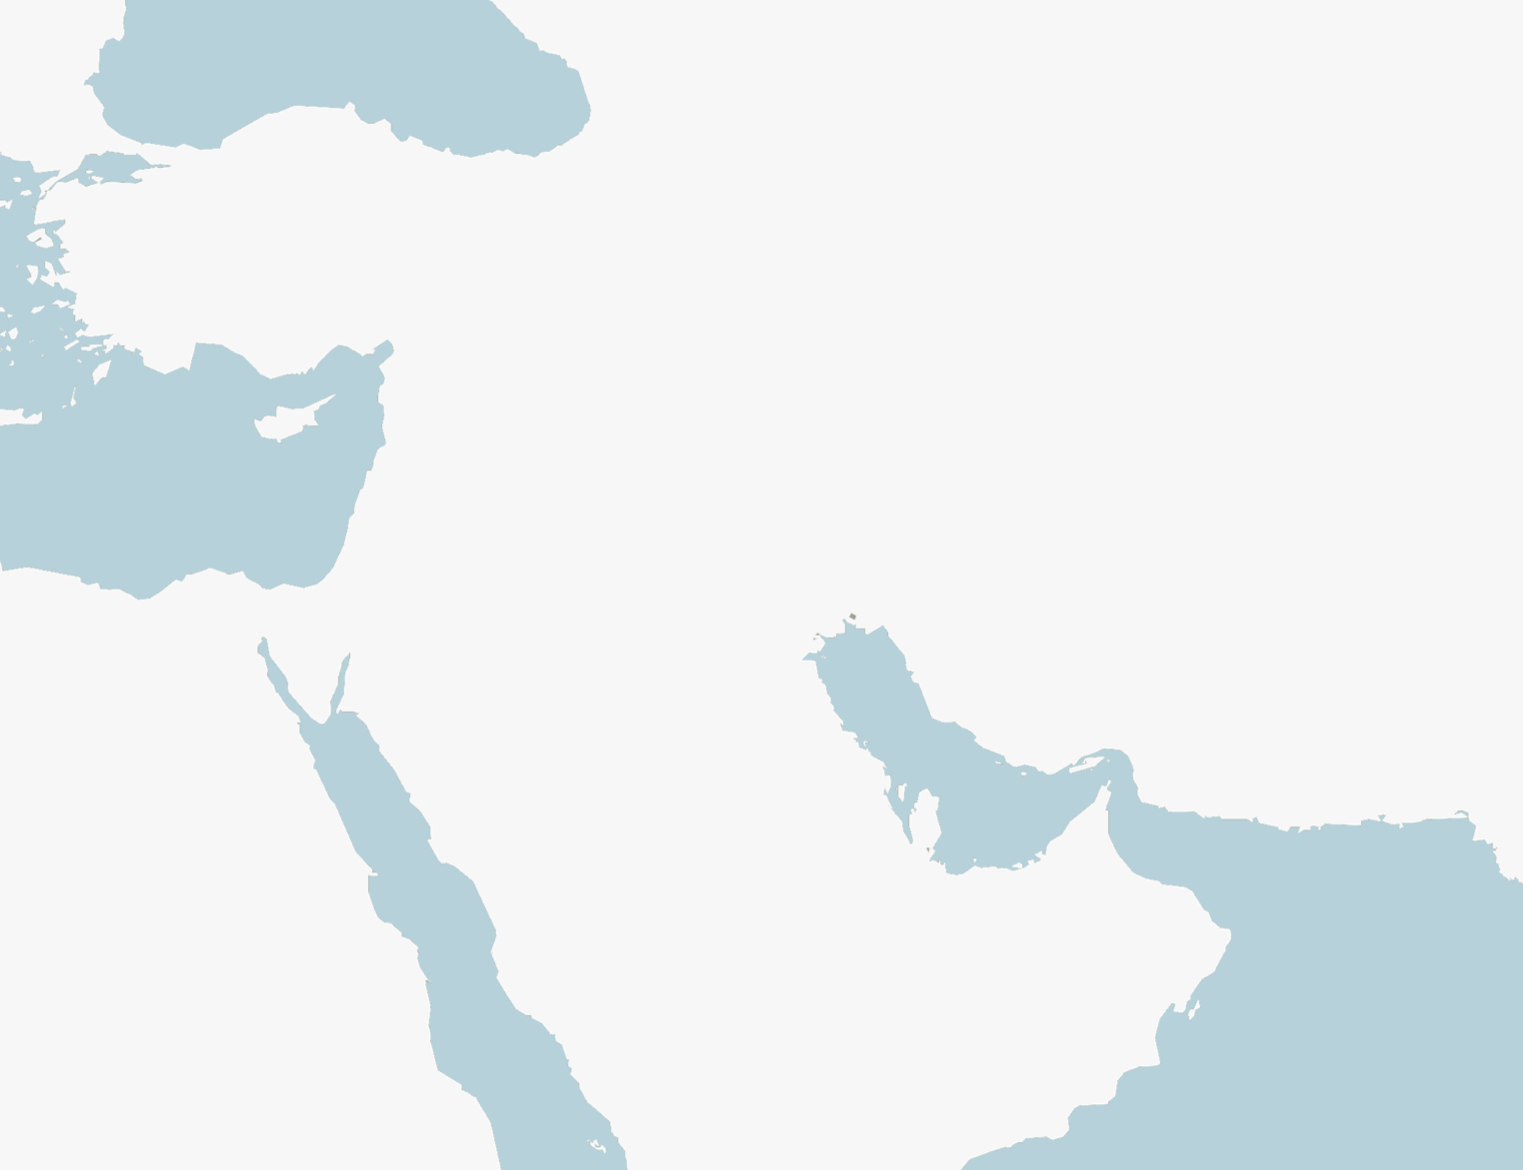 A blank map of the Arab states region